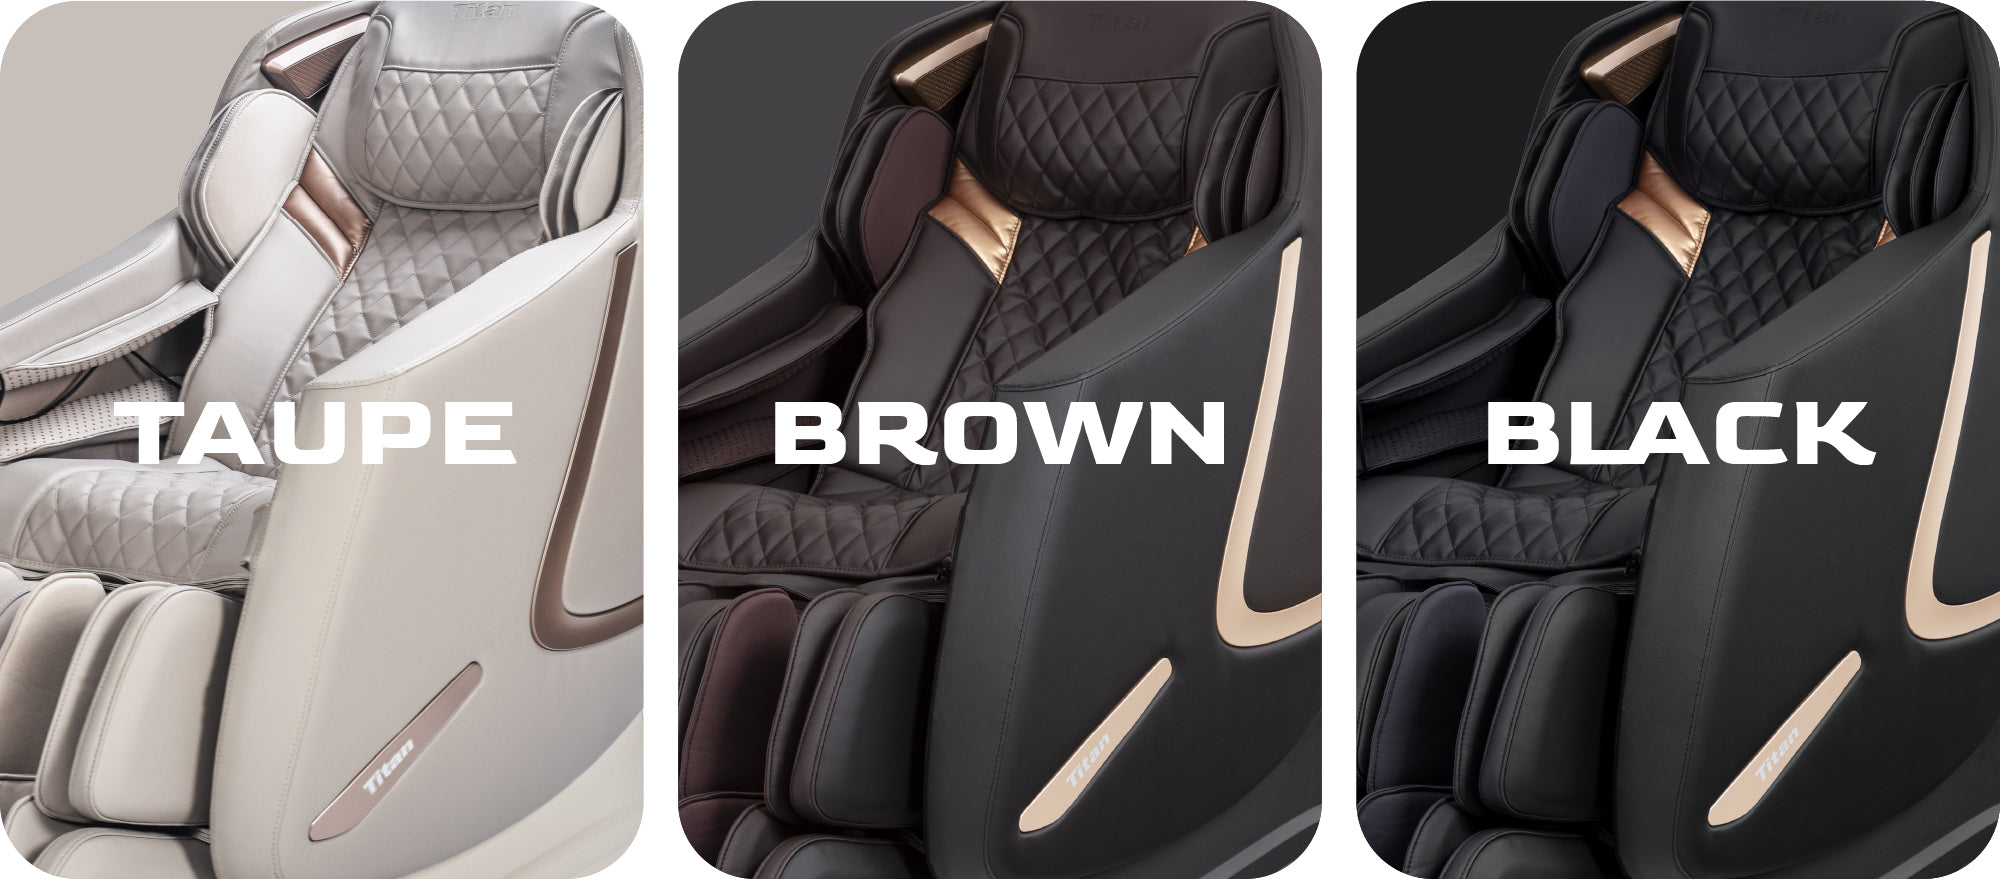 Titan 3D Prestige taupe, brown and black colors